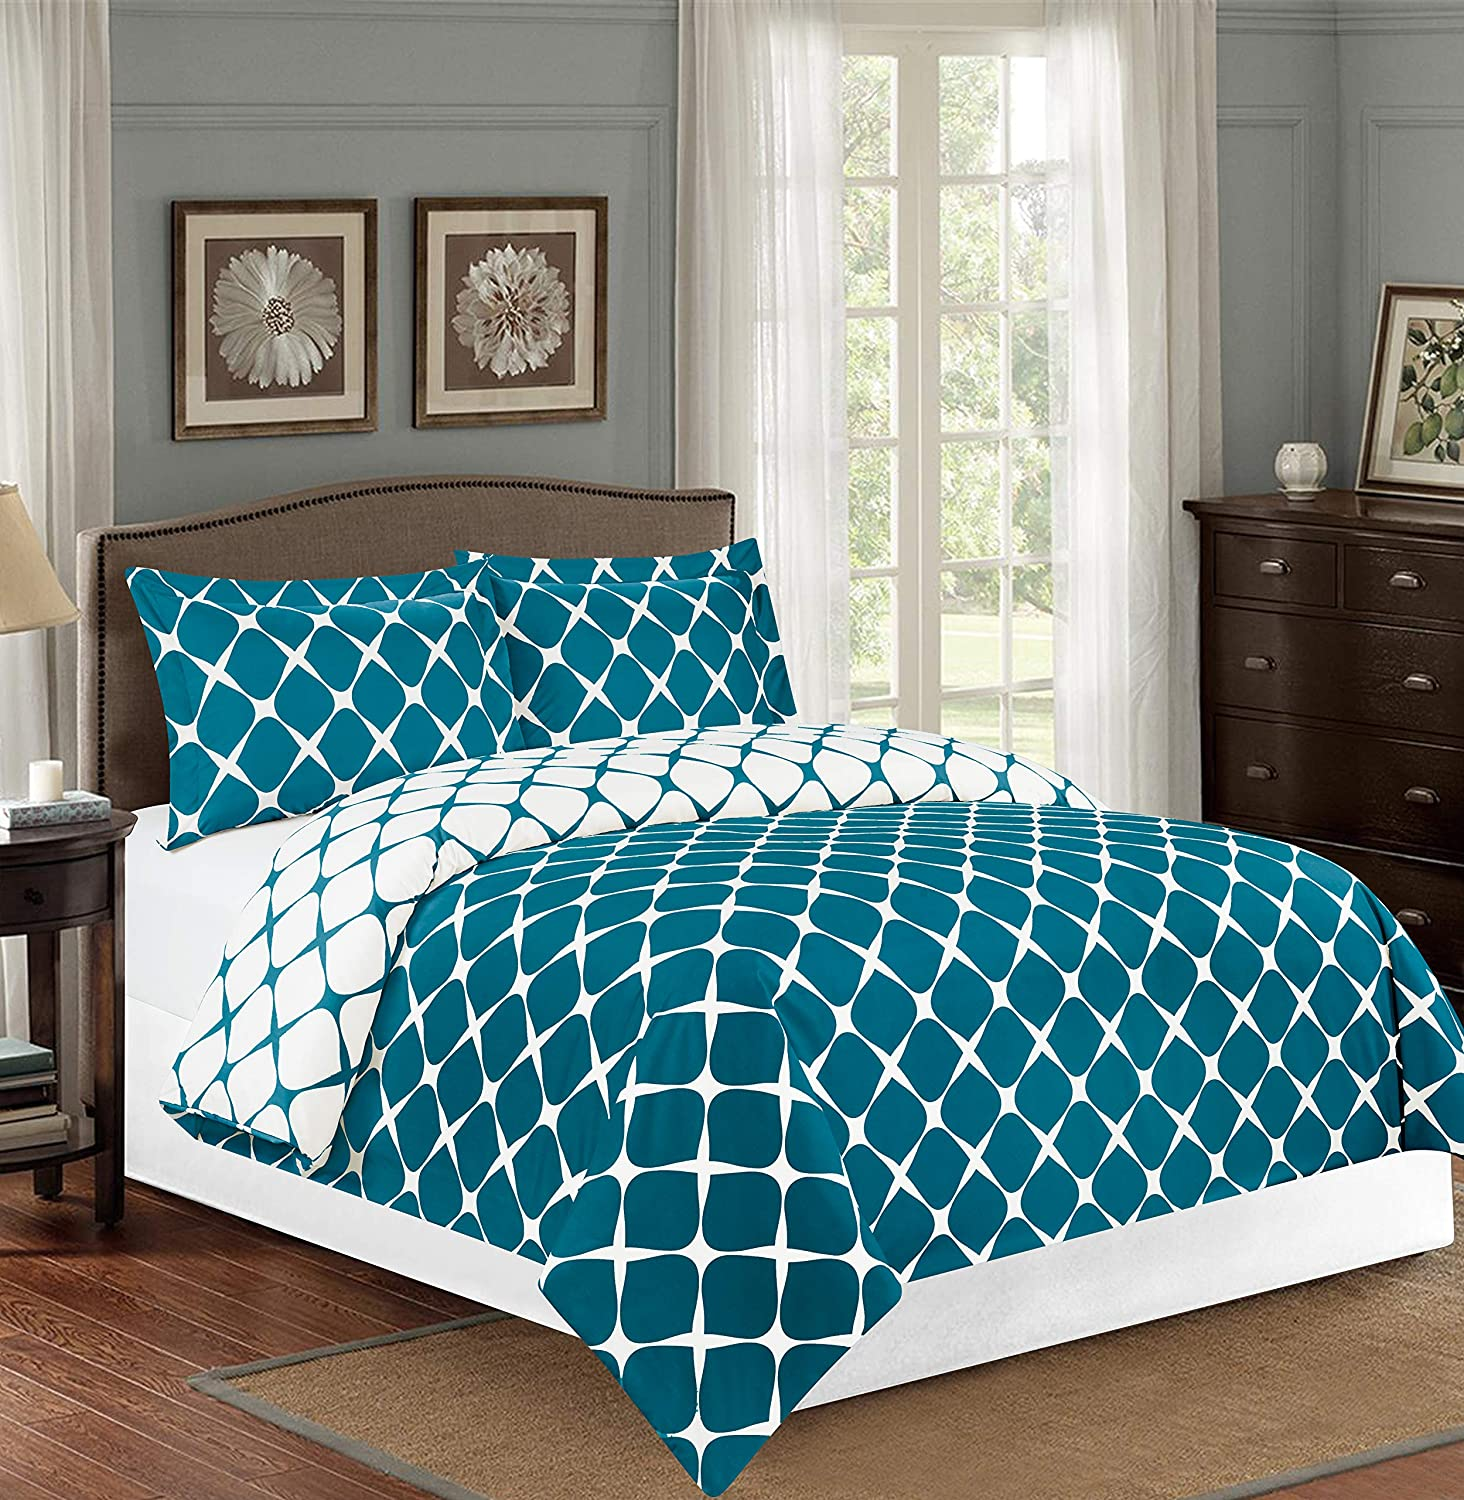 Elegant Comfort Luxury Soft and Cozy 1500 Thread Count Premium Hotel Quality 3-Piece Milano Trellis Pattern Printed Reversible Duvet Cover Set with Shams, King/California King, Teal - 2 Tone